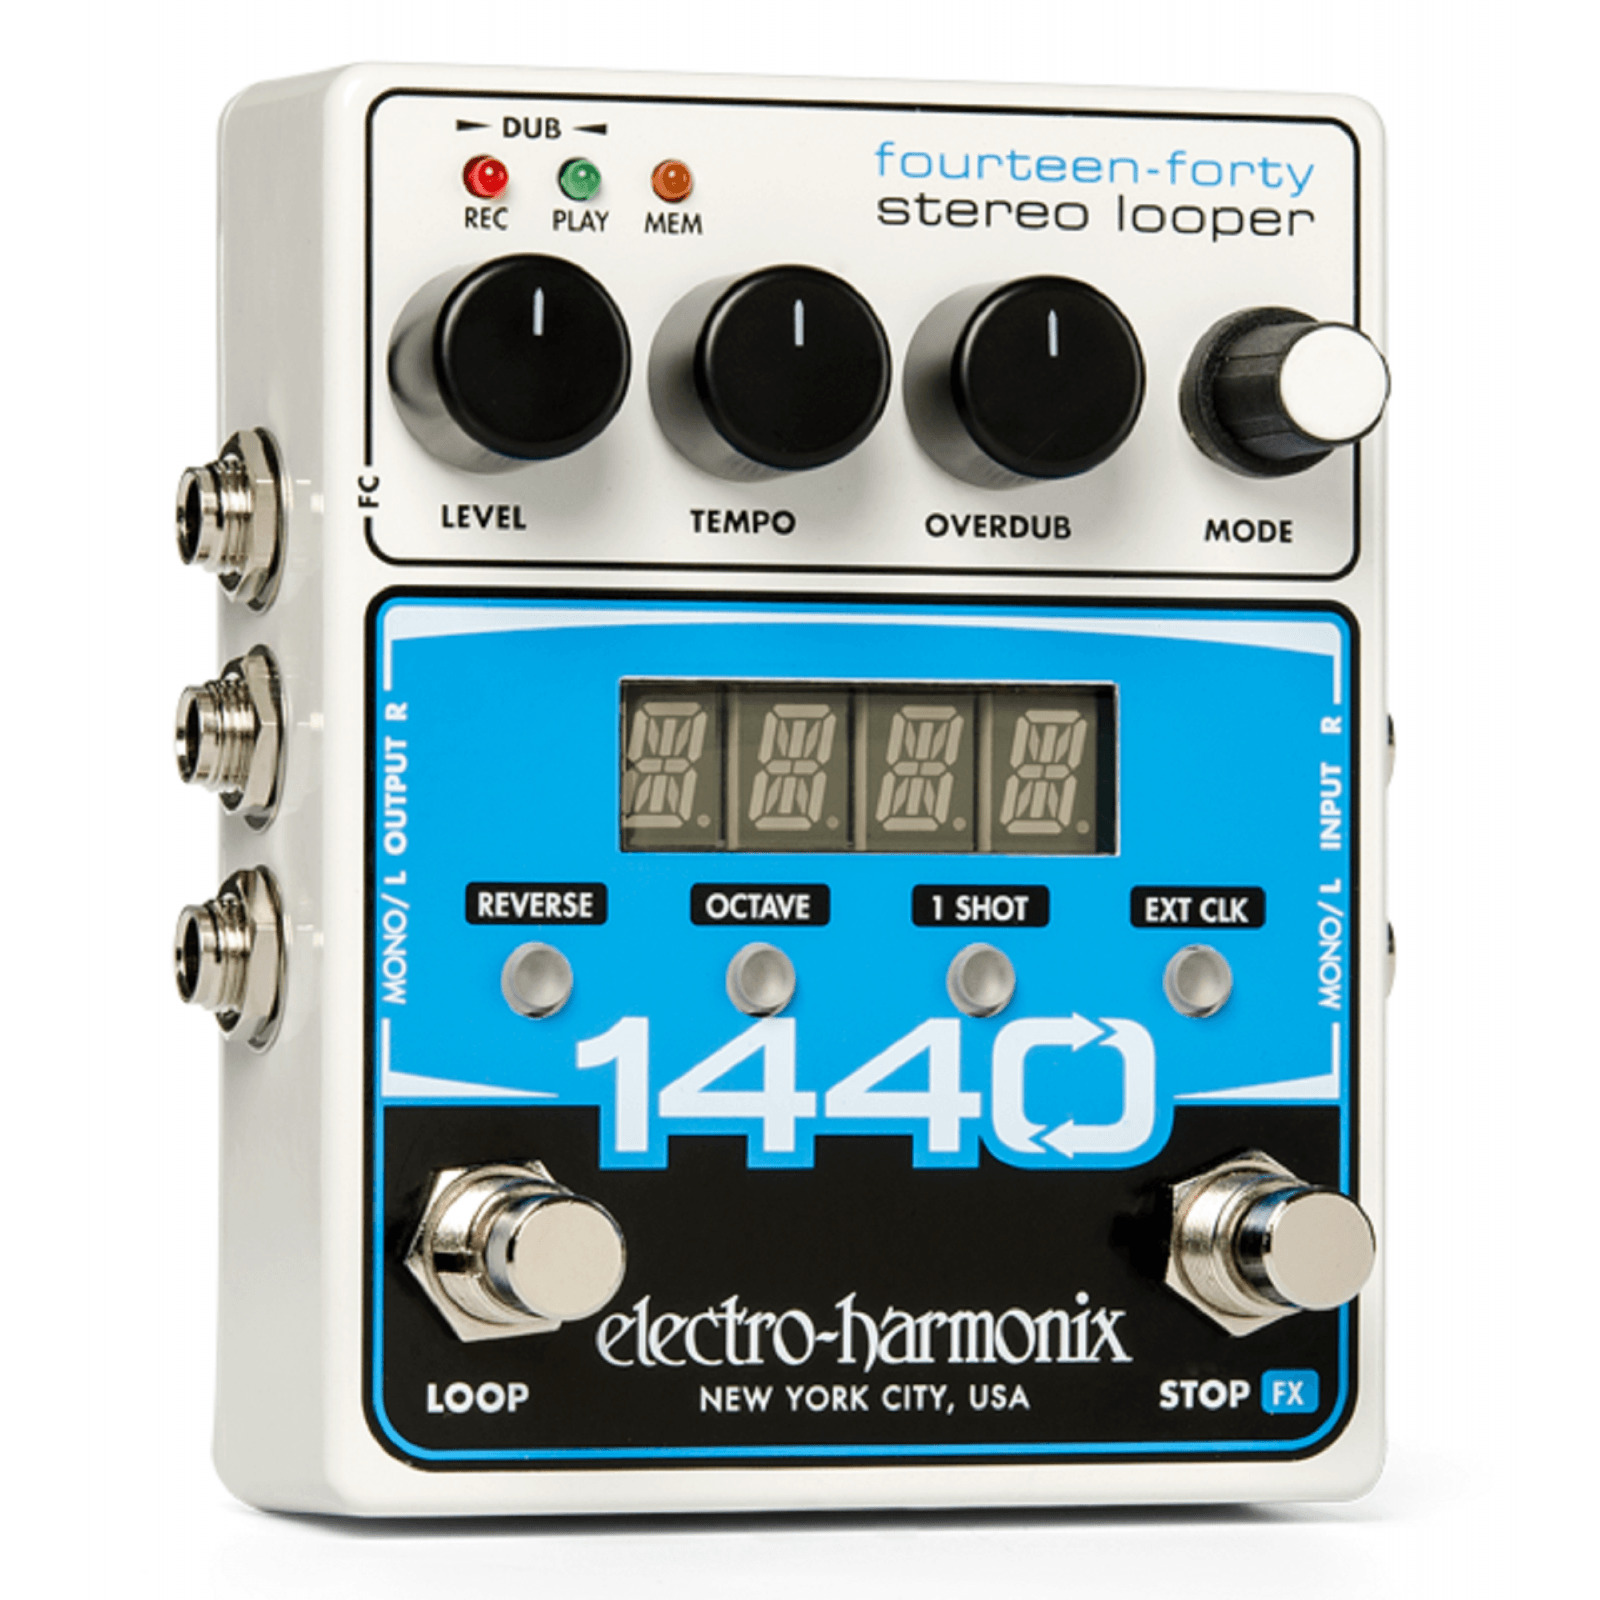 Electro-Harmonix 1440 Fourteen-Fourty Stereo Looper Guitar Effects Pedal